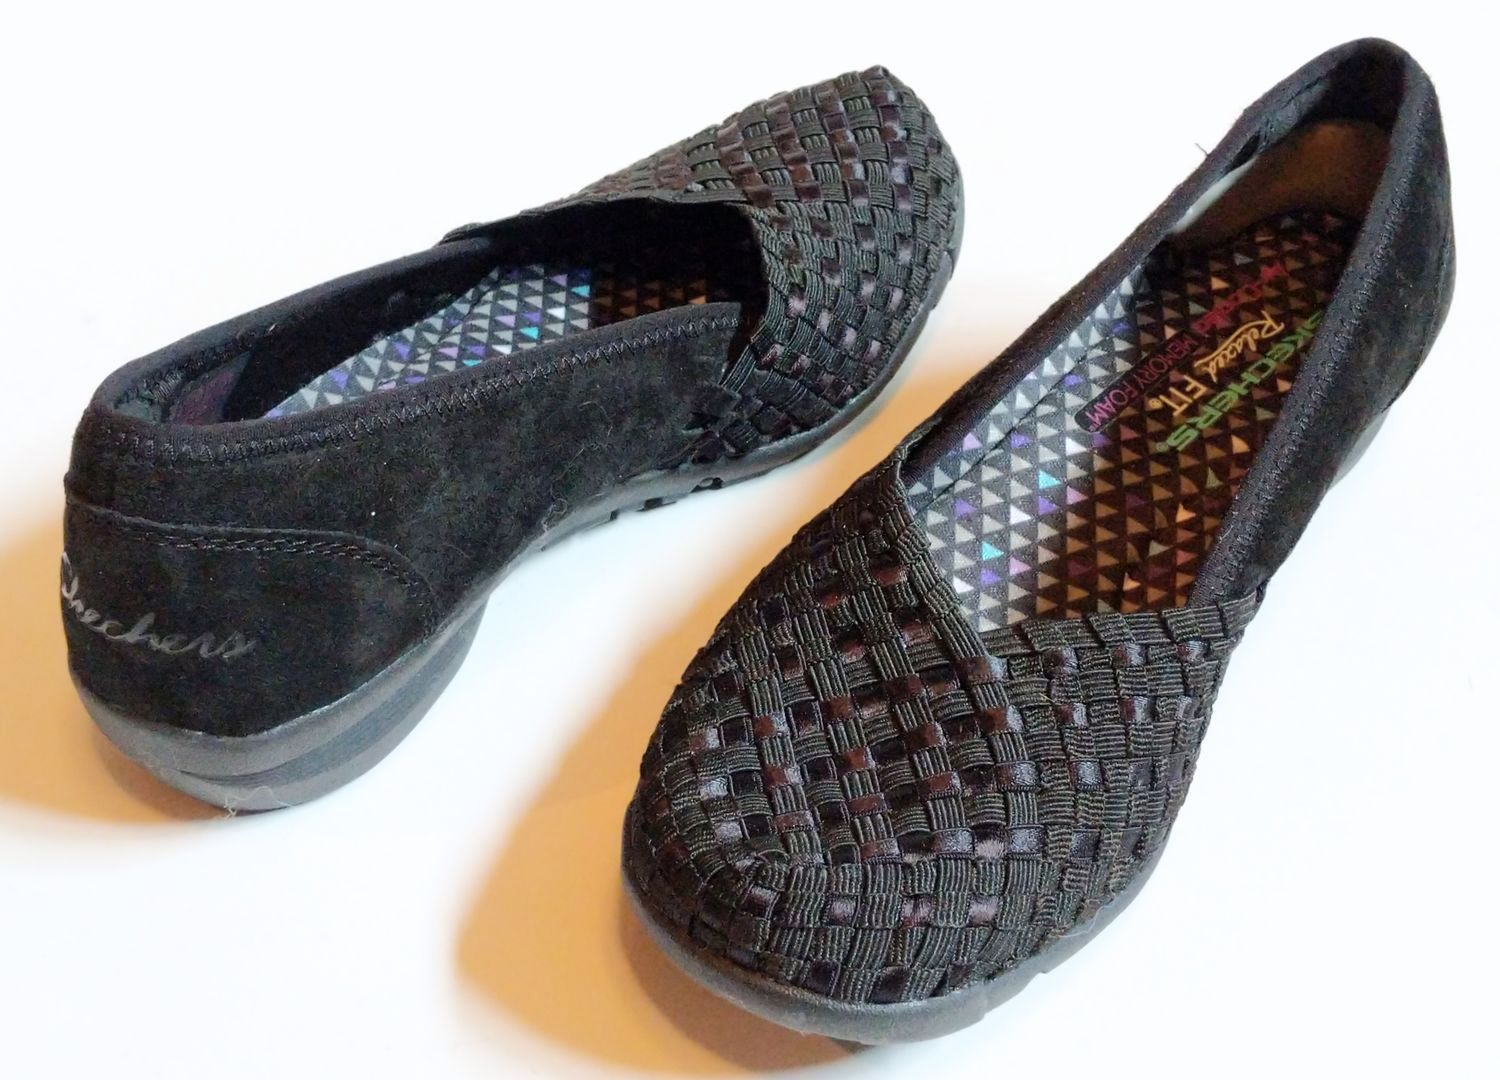 45cd52b1621 Skechers Women s Relaxed Fit Career Puzzling Loafer  US 7